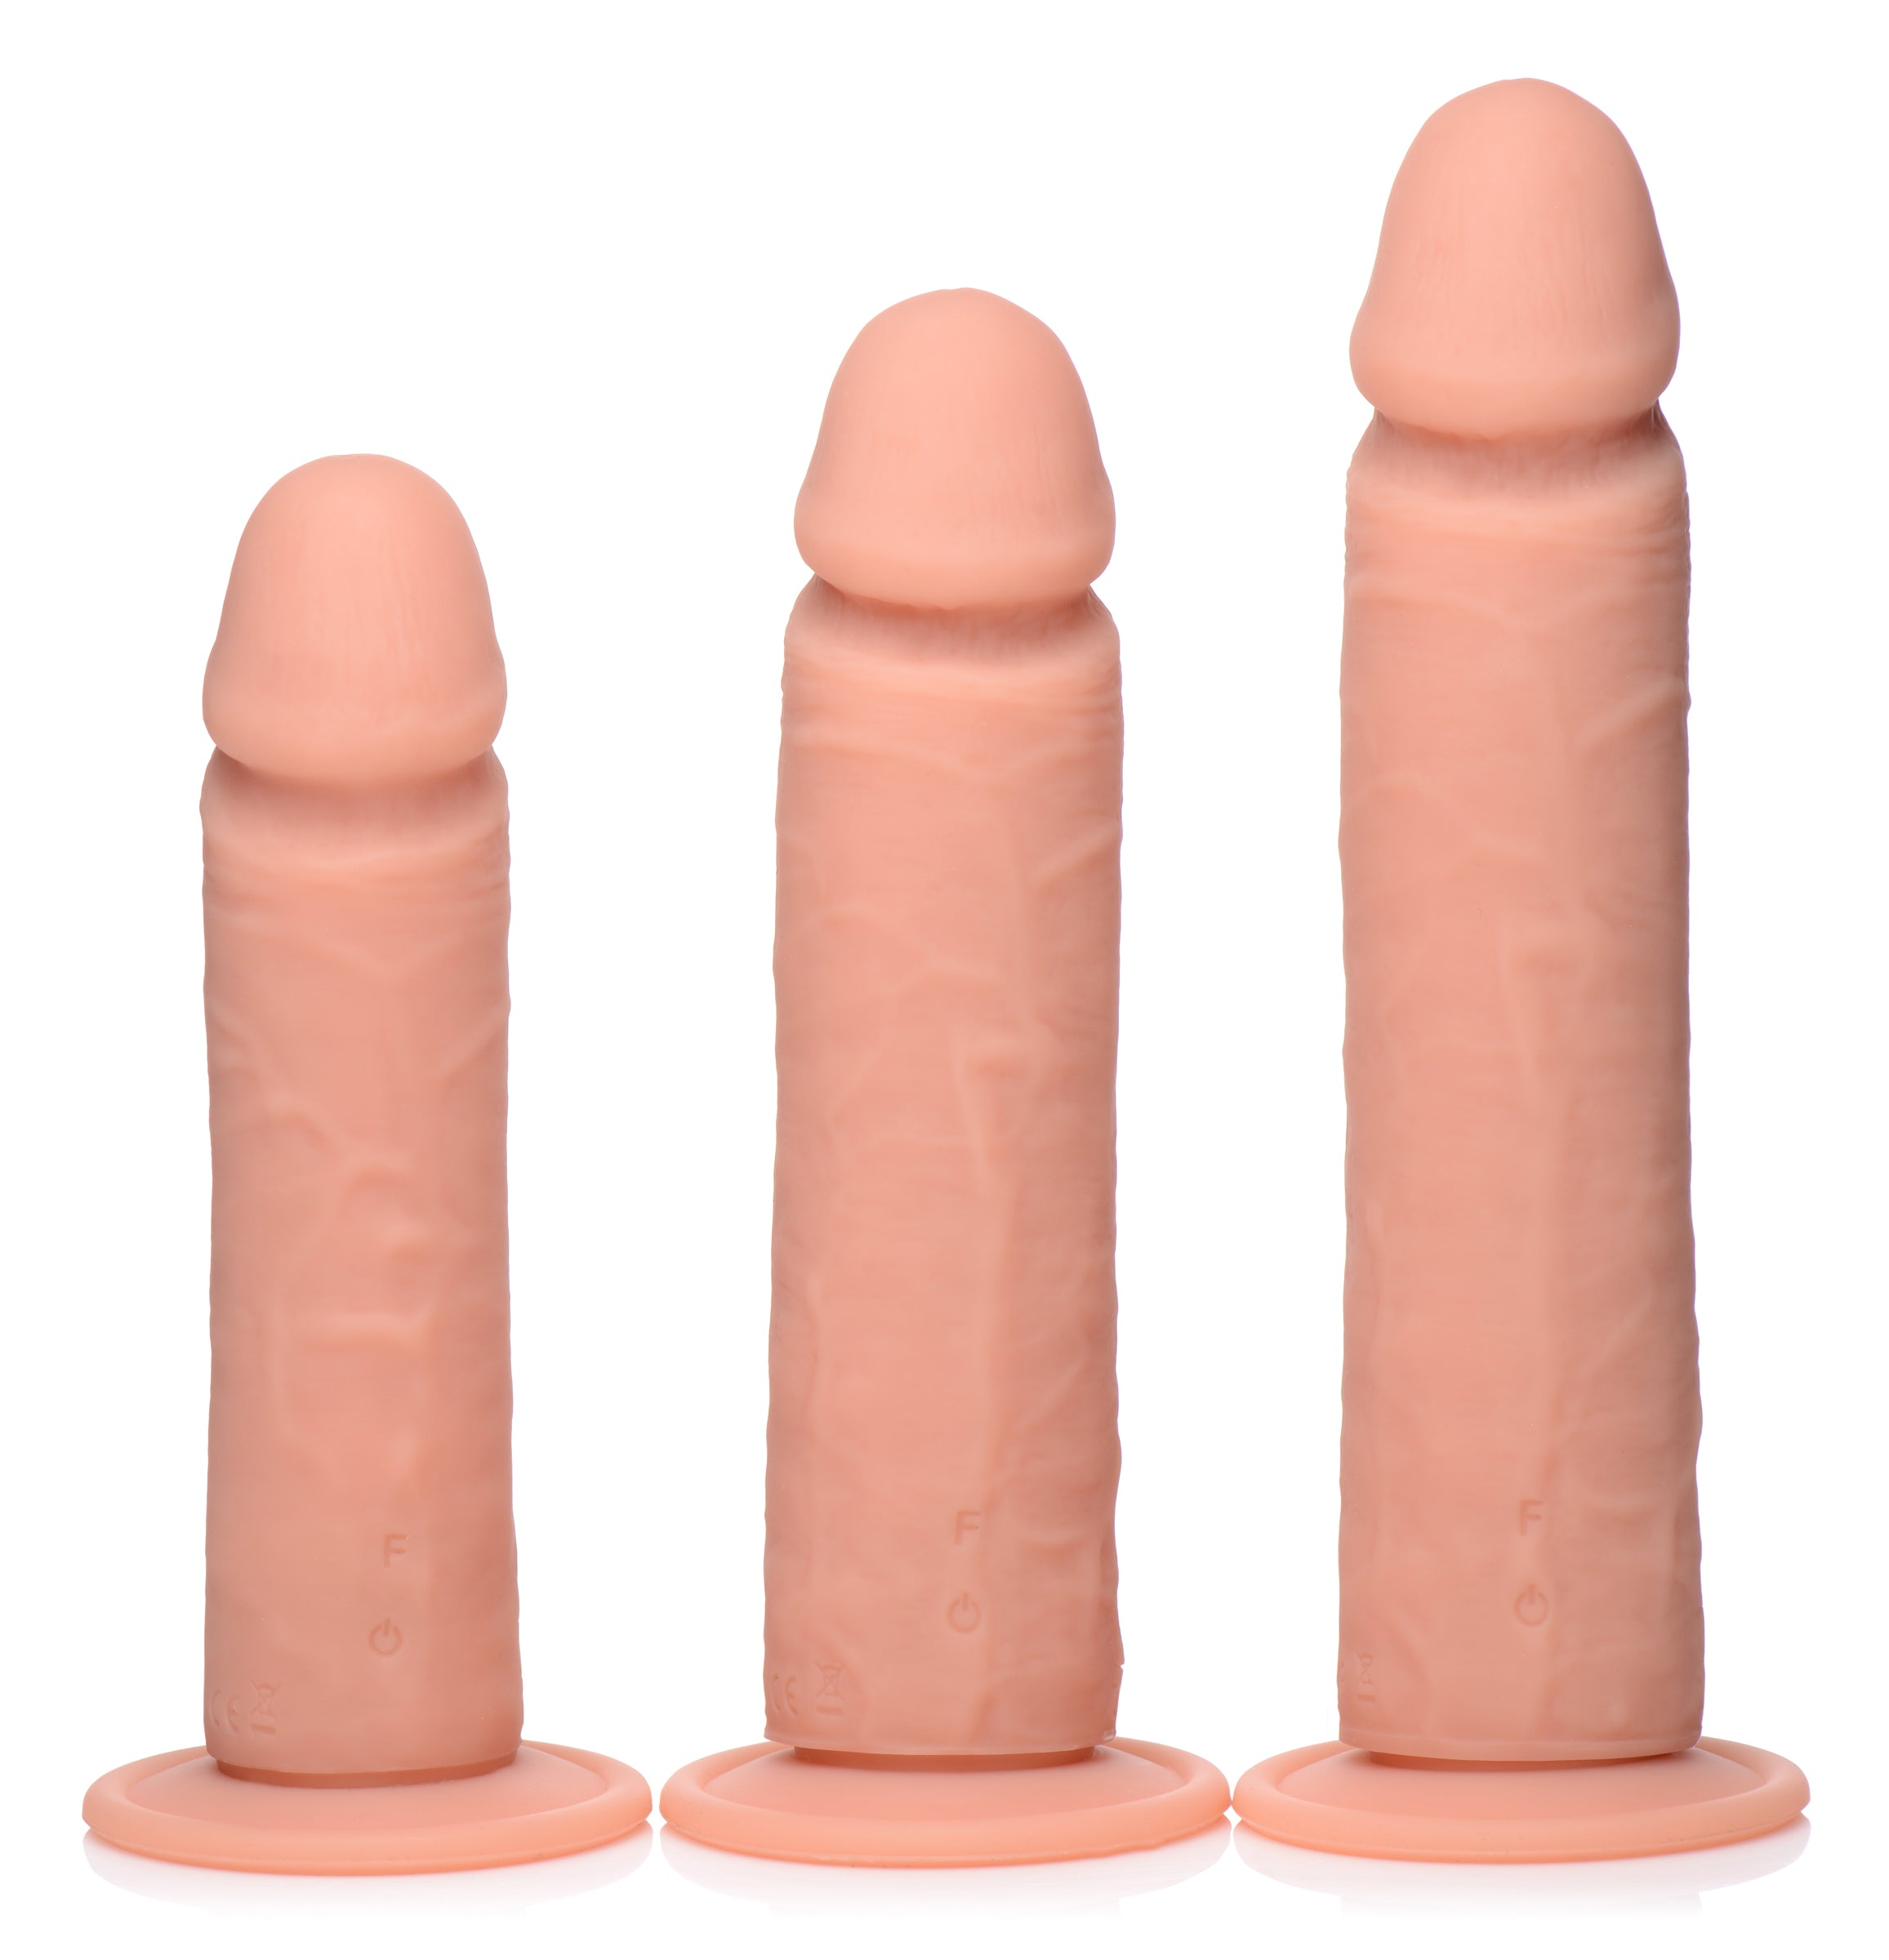 Big Shot Vibrating Remote Control Silicone Dildo - 8 Inch